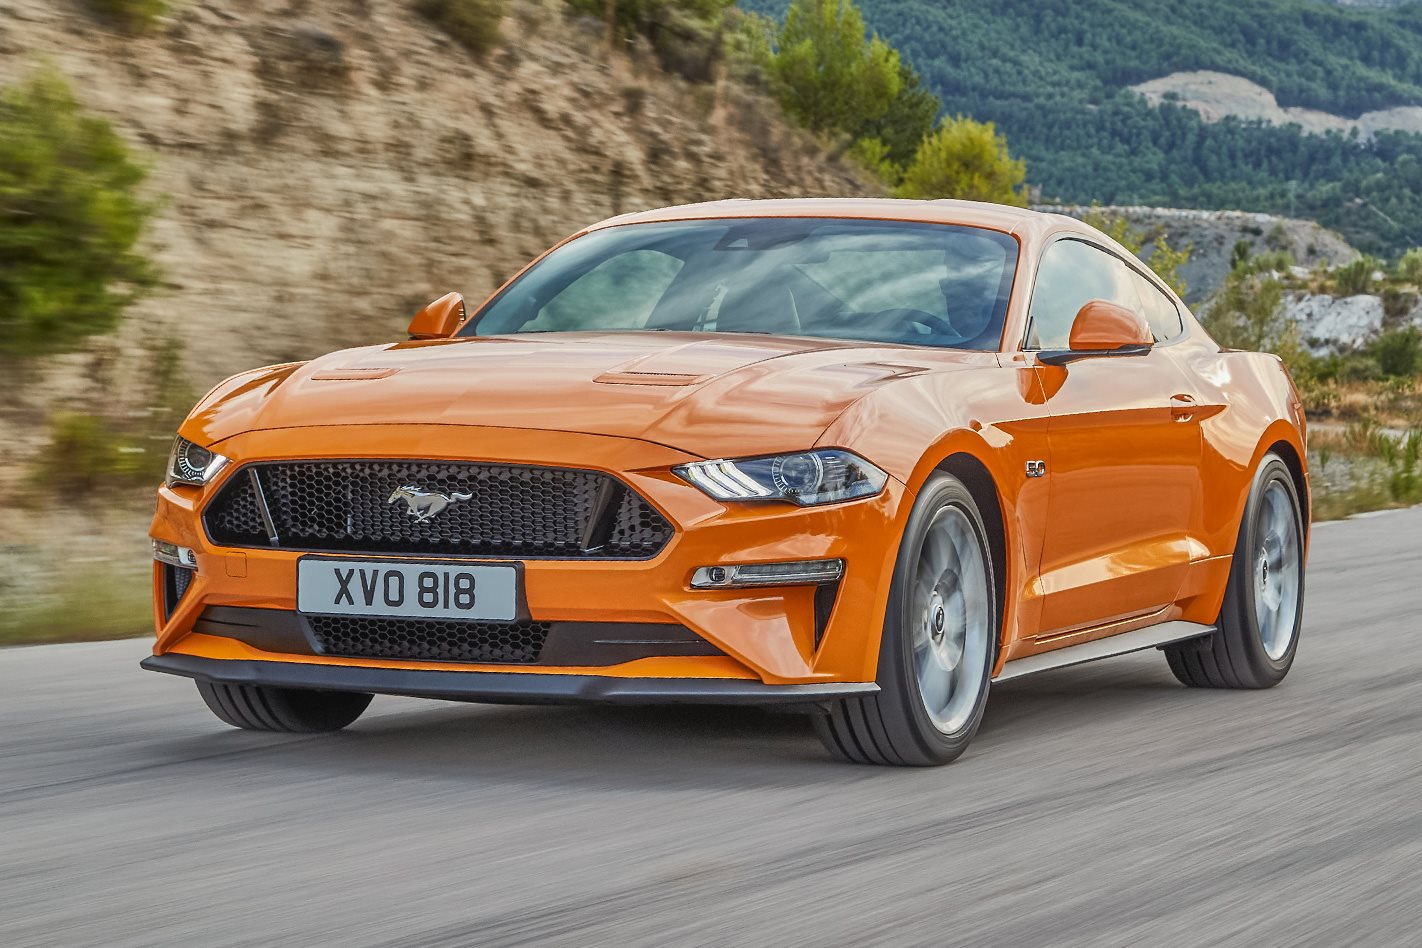 2018 ford mustang arriving in australia with drag mode but line locker locked out